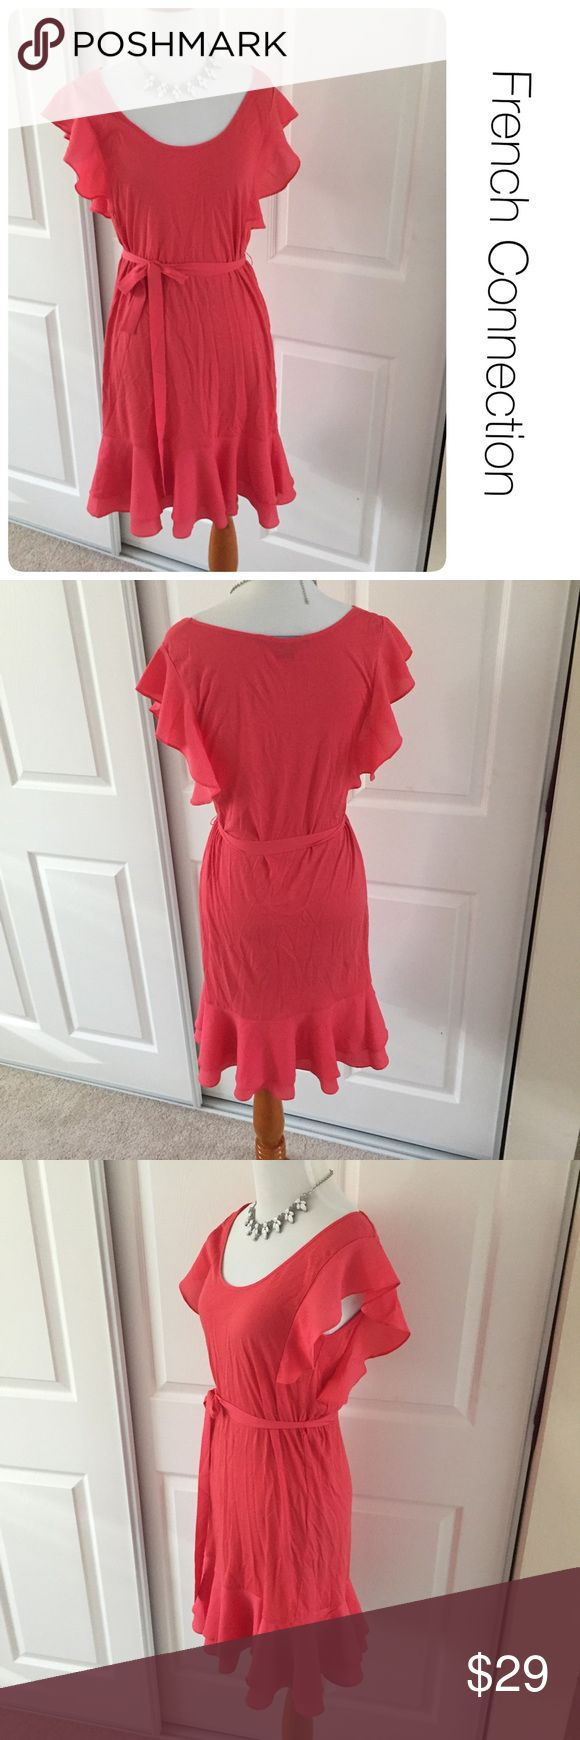 French Connection pink ruffle dress size 2 ♦️Excellent condition. No holes, stains or piling.                                                 ♦️Materials- 50 cotton/50 modal                    ♦️Measurements:                               ♦️Laying flat armpit to armpit: approximately 16 inches                       ♦️Laying flat from the back of the neck to the bottom of the front hem is approximately 33 inches French Connection Dresses Mini